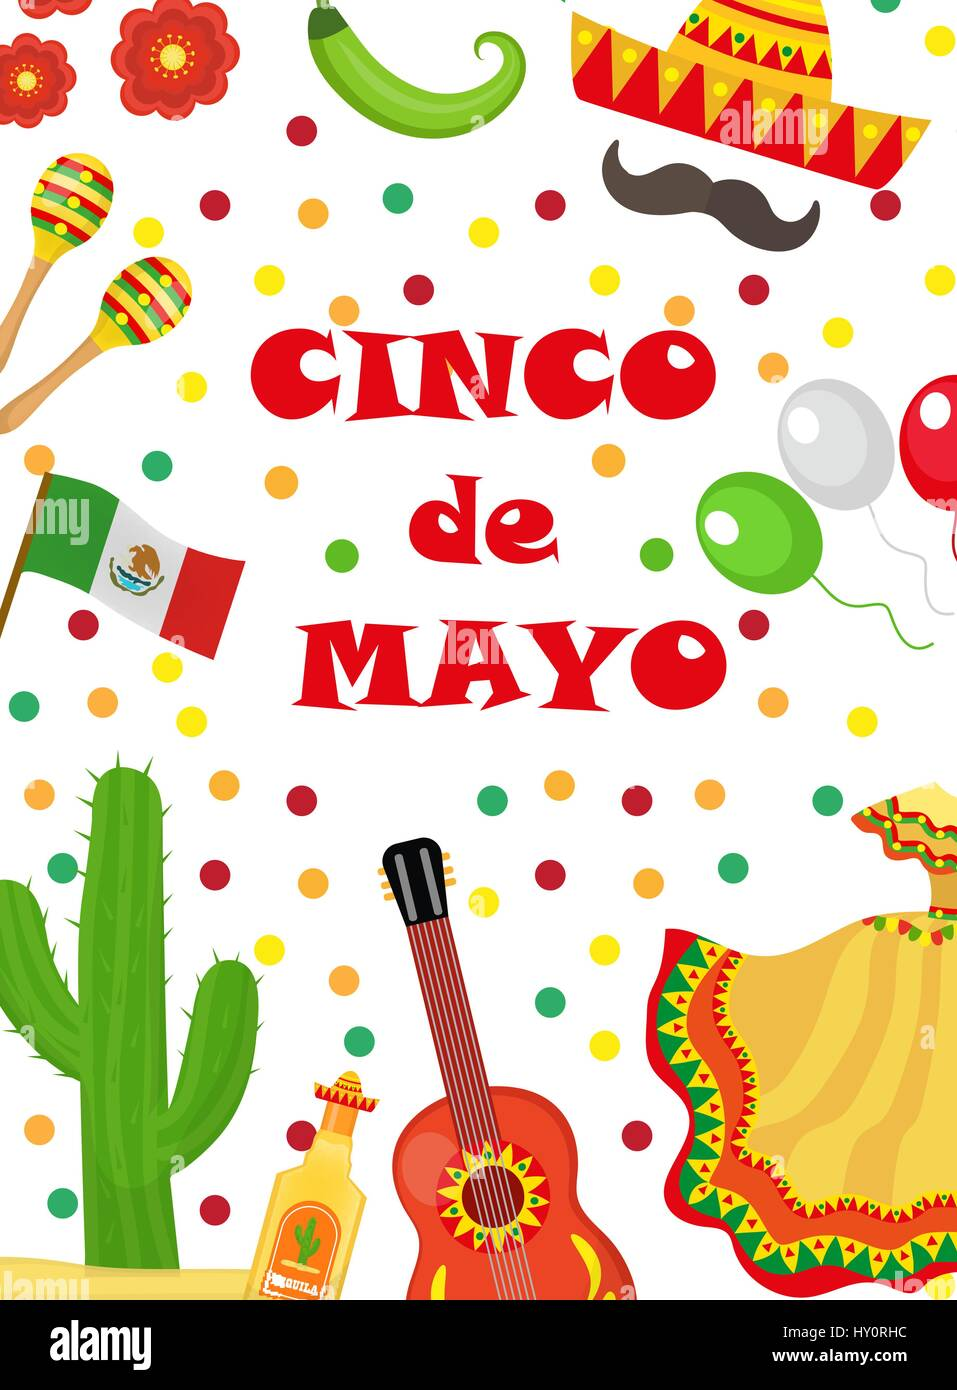 Cinco de mayo greeting card template for flyer poster invitation cinco de mayo greeting card template for flyer poster invitation mexican celebration with traditional symbols vector illustration m4hsunfo